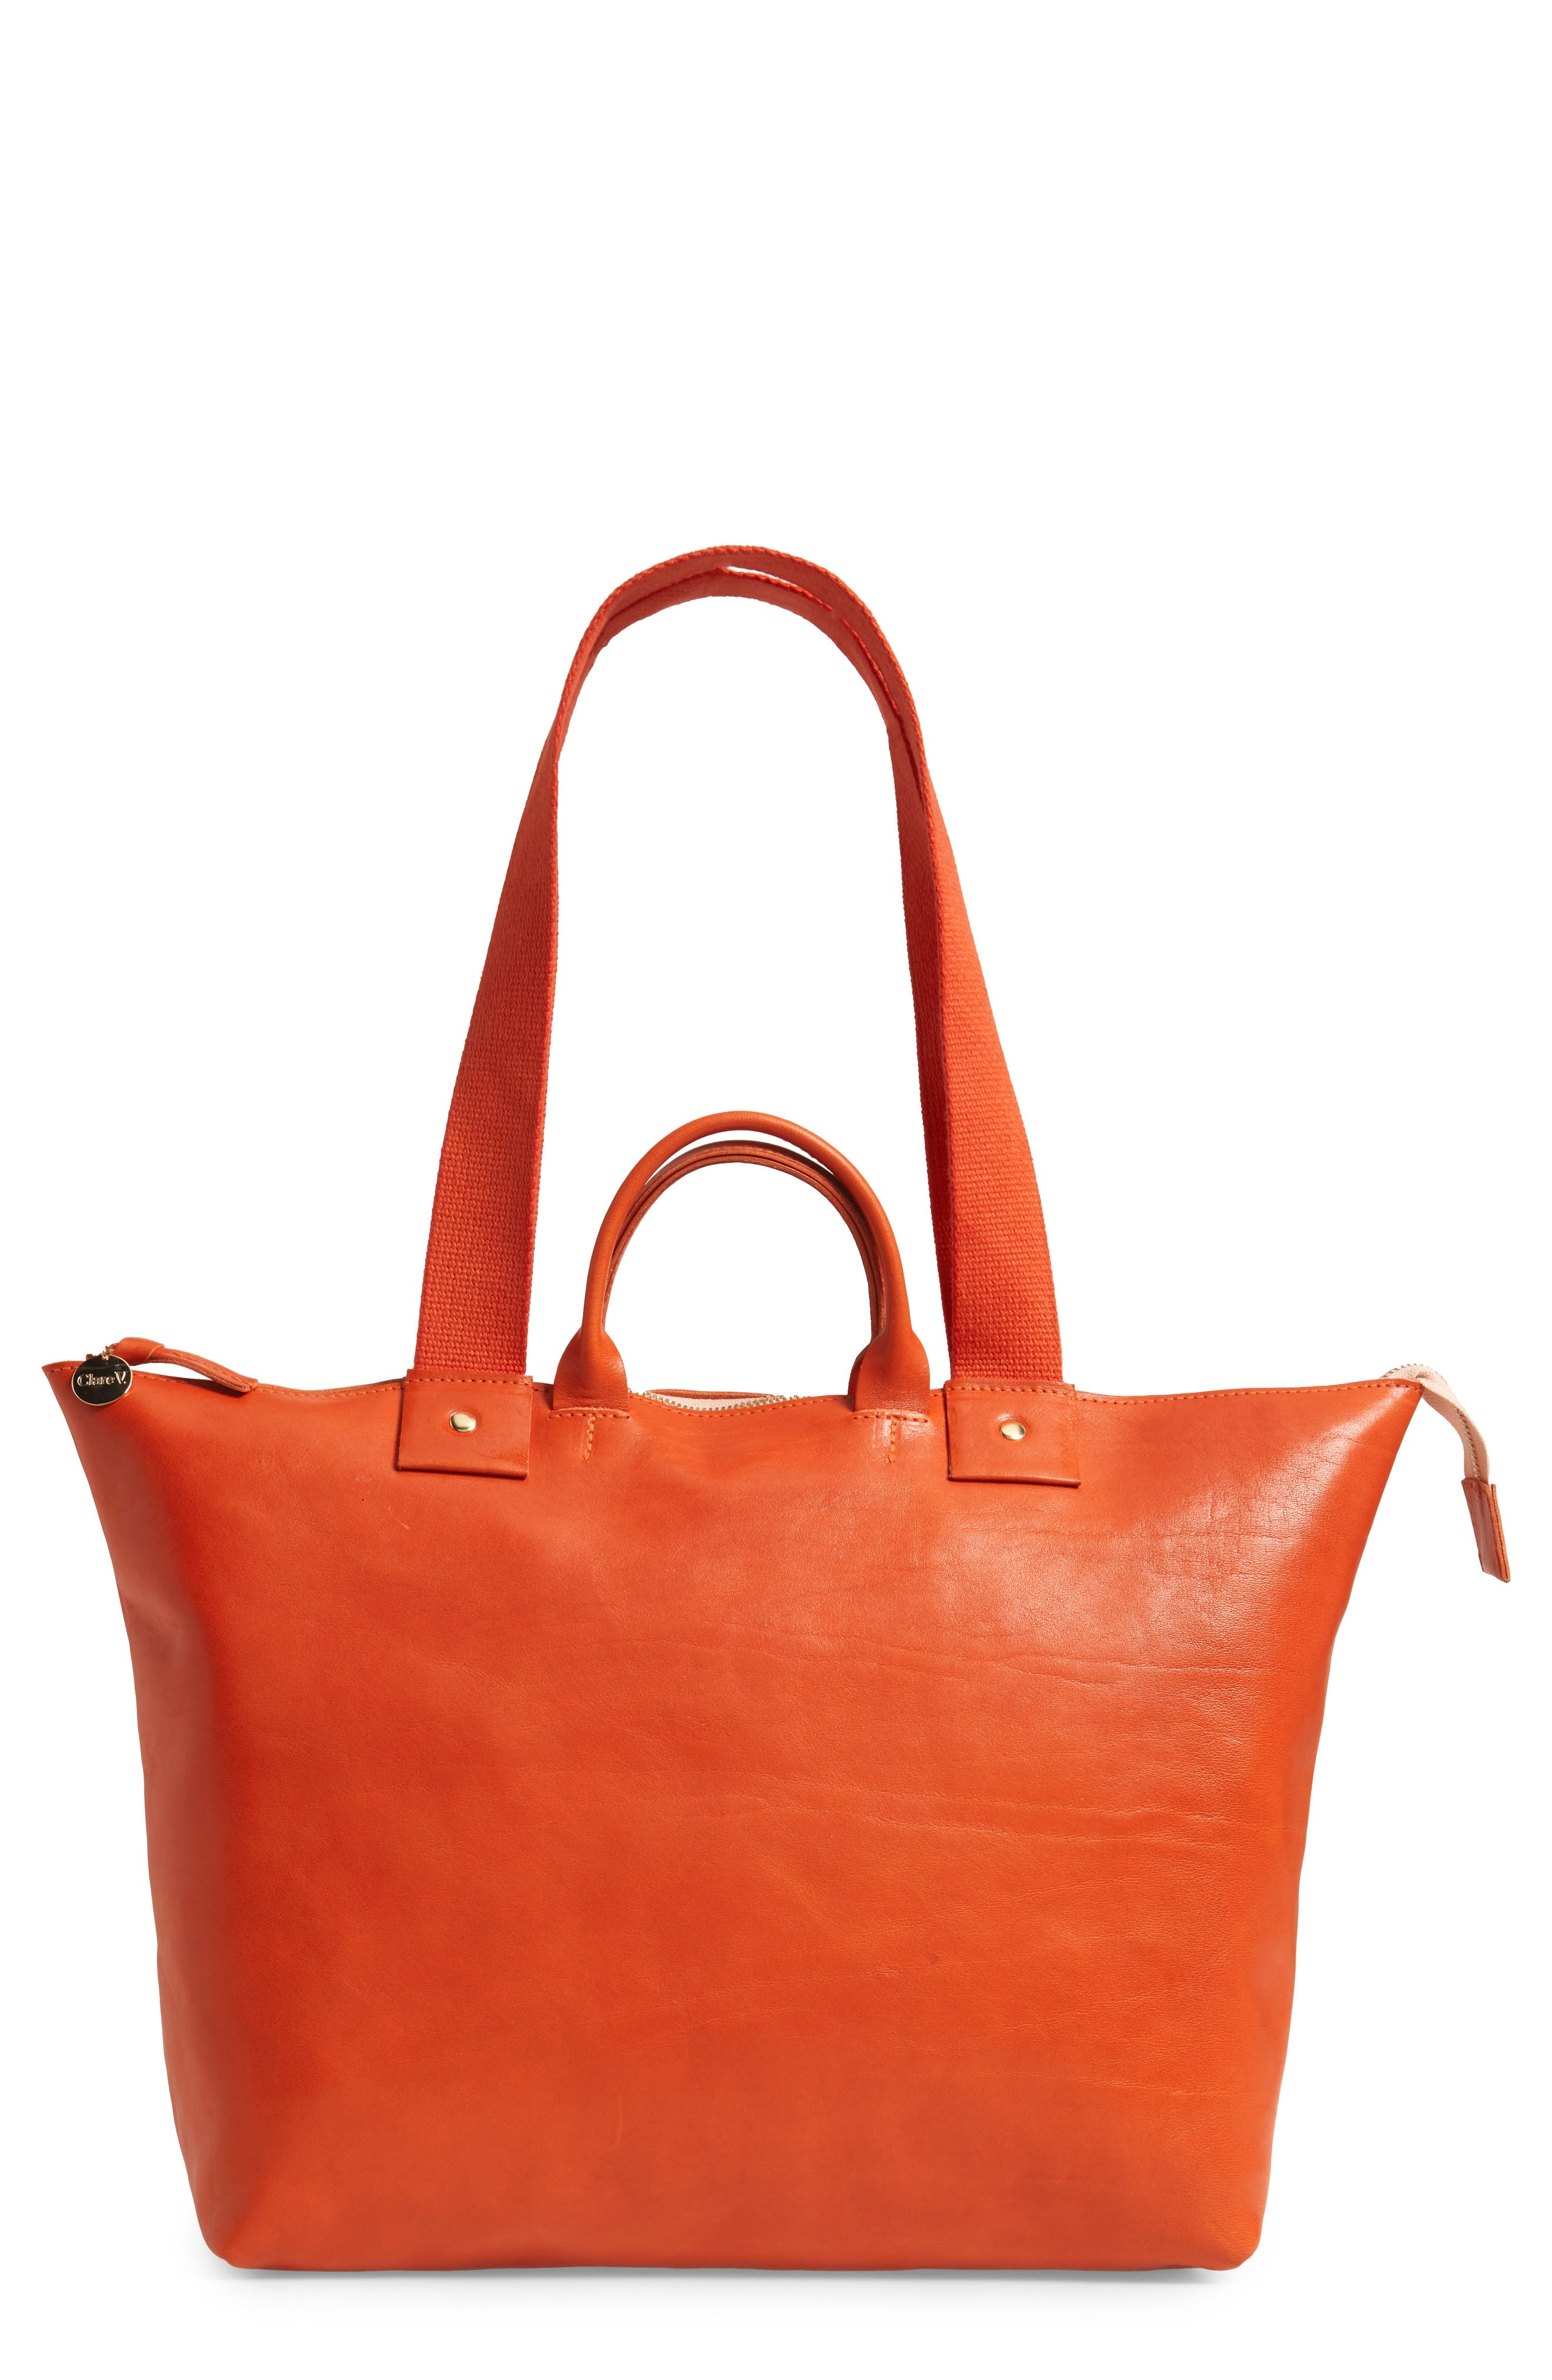 CLARE V Le Zip Leather Tote - Red in Poppy Rustic Pop